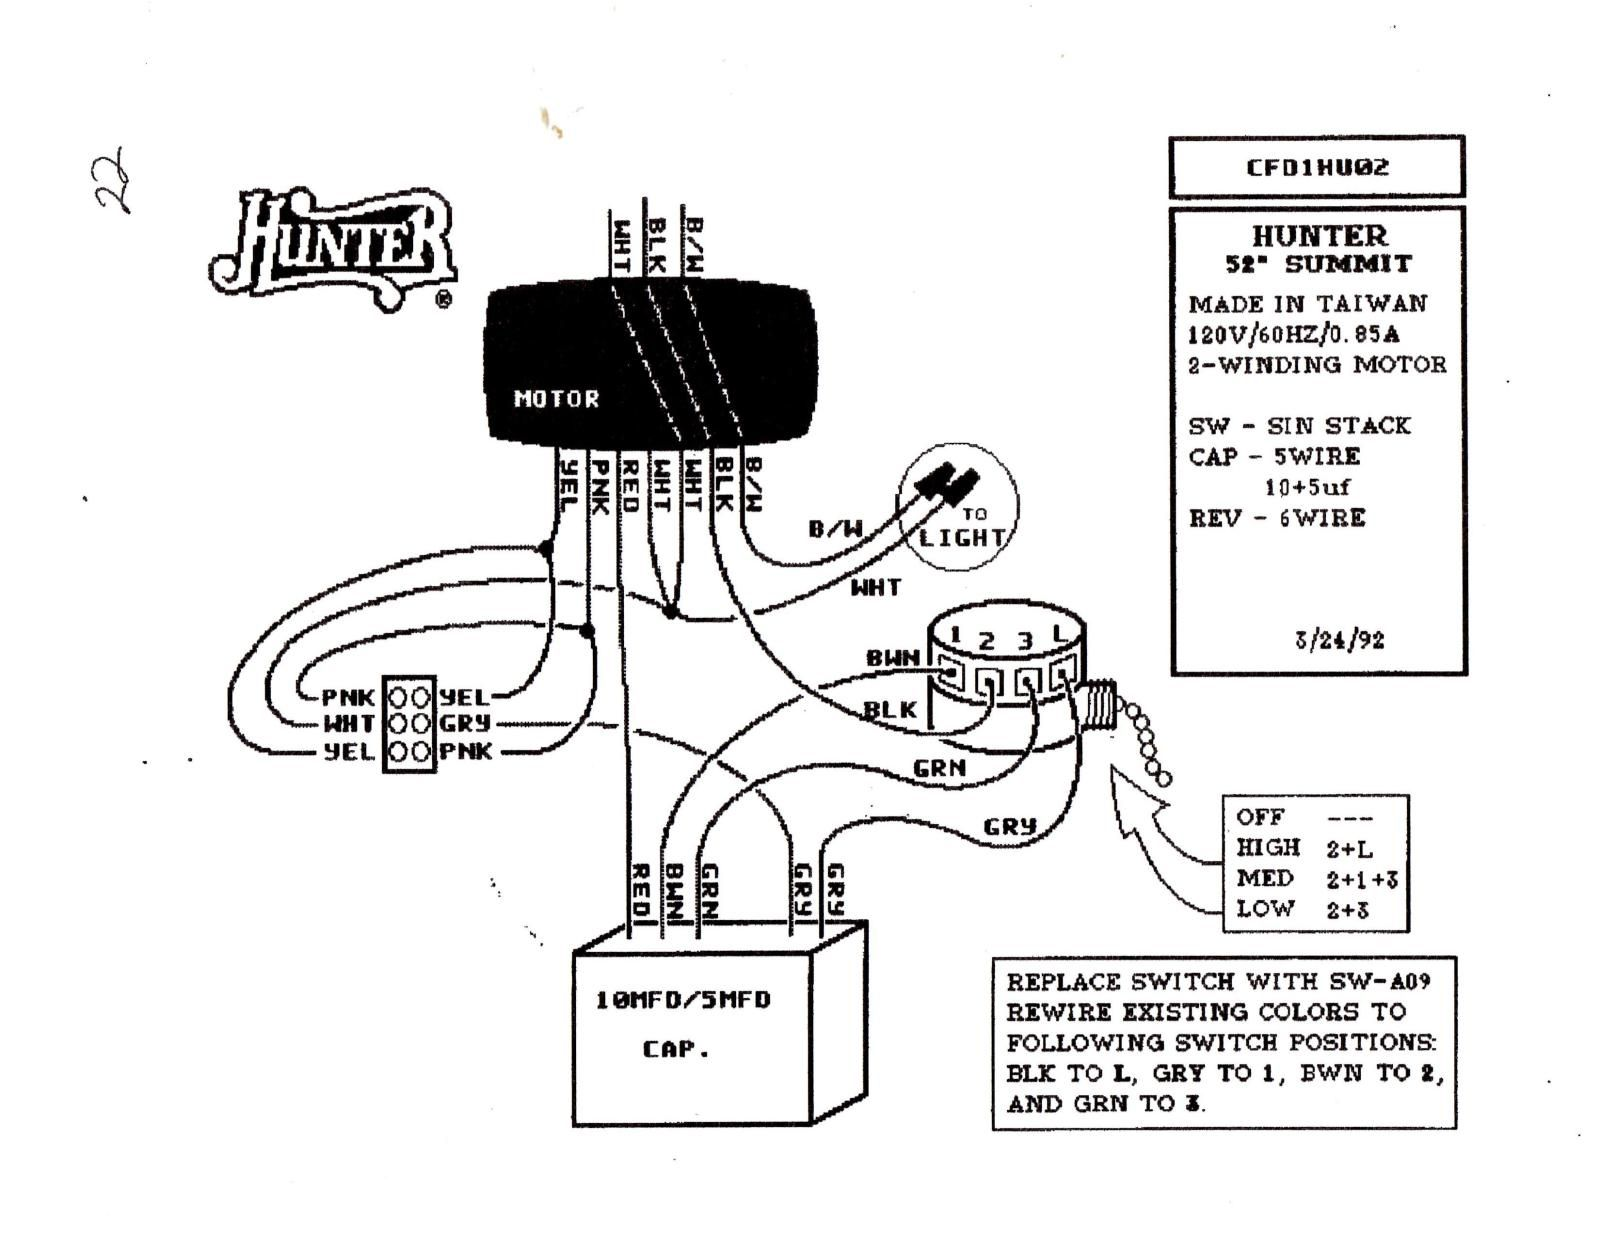 Hunter Ceiling Fan Sd Switch Wiring Diagram | Switch in 2019 ... on